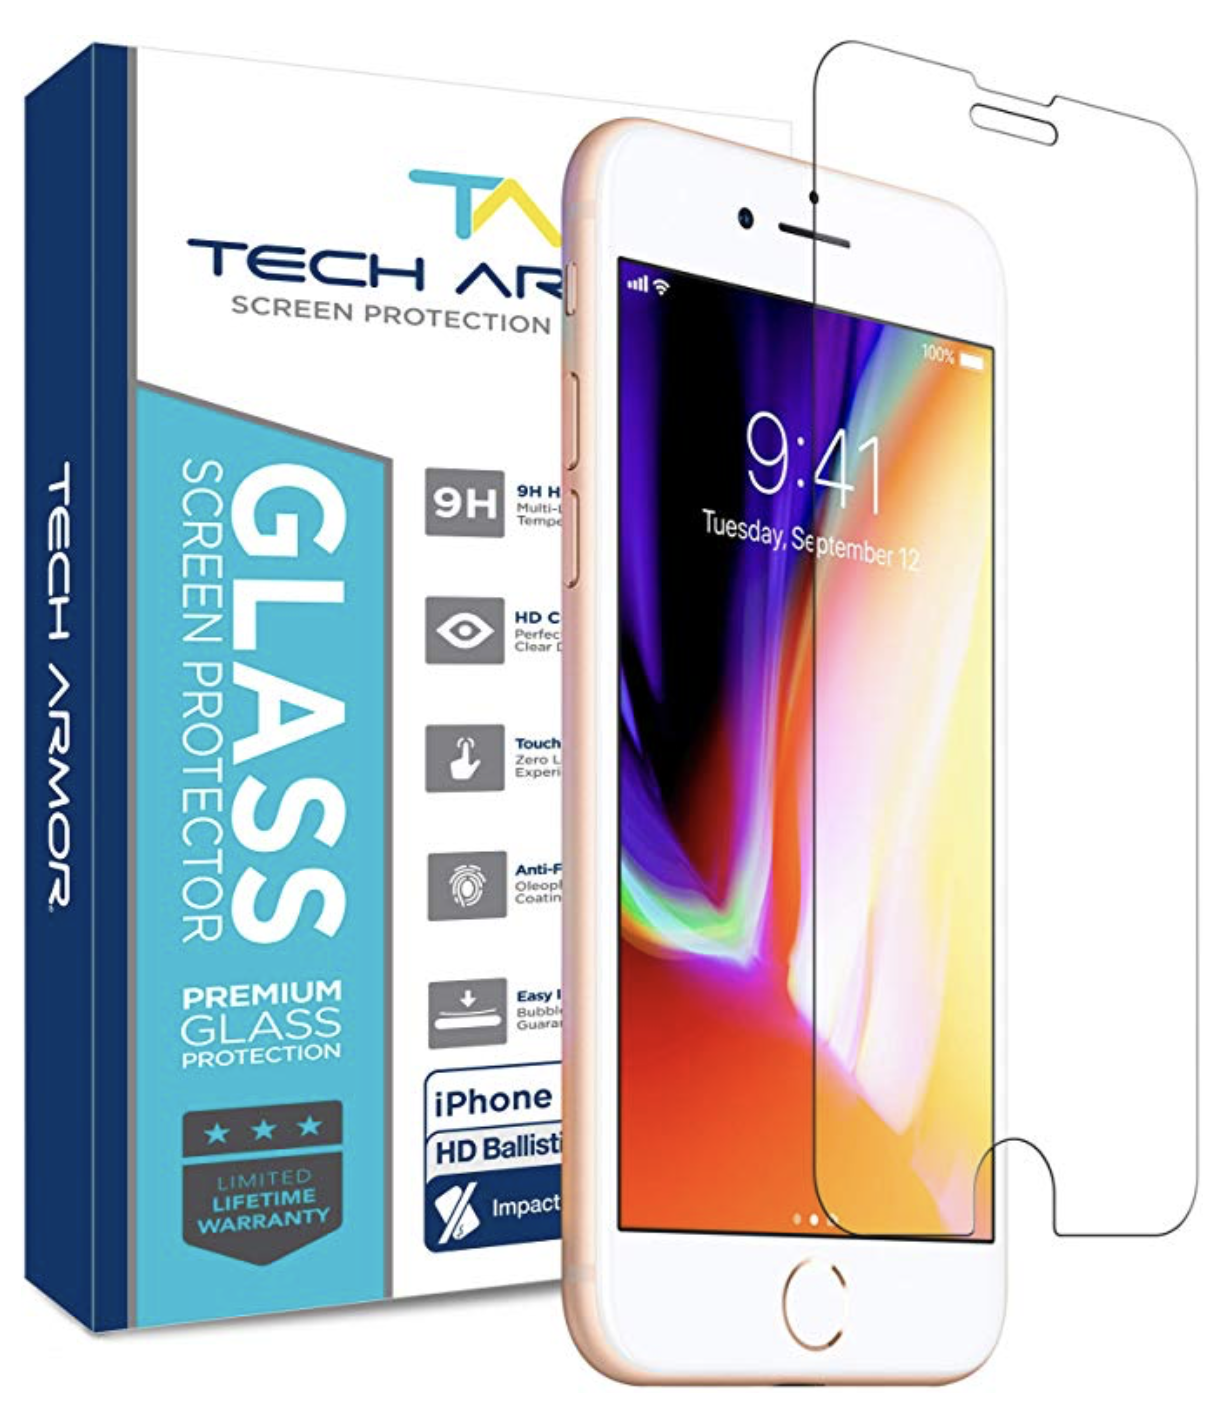 Tech Armor ELITE Ballistic Glass Screen Protector for iPhone 6/7/8 Plus - 1pk at Small Dog Electronics